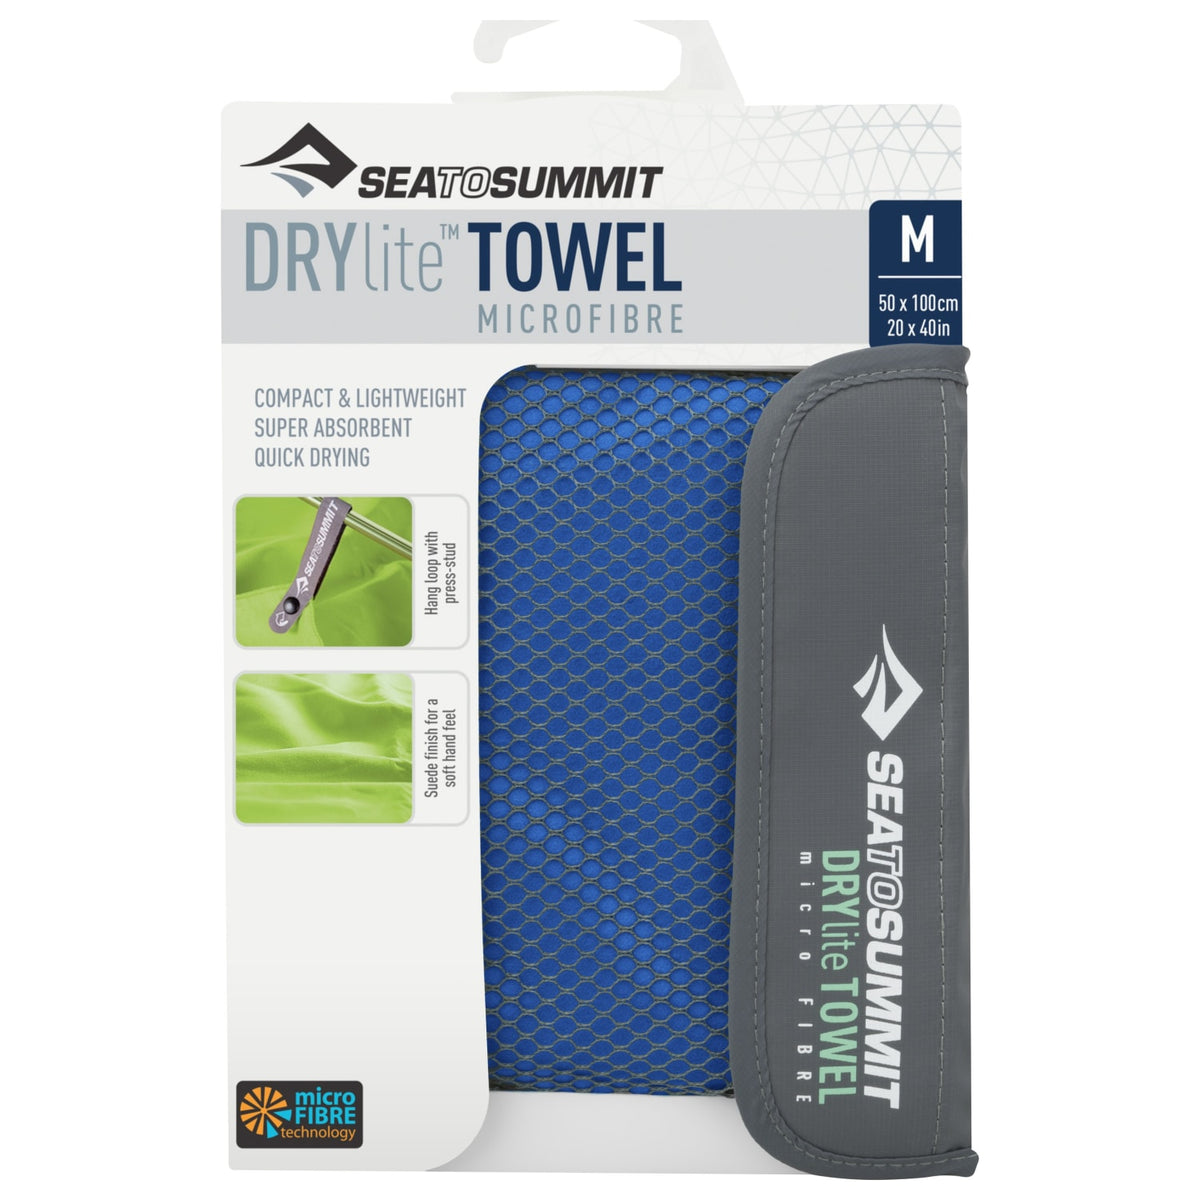 Sea to Summit Drylite Towel Medium